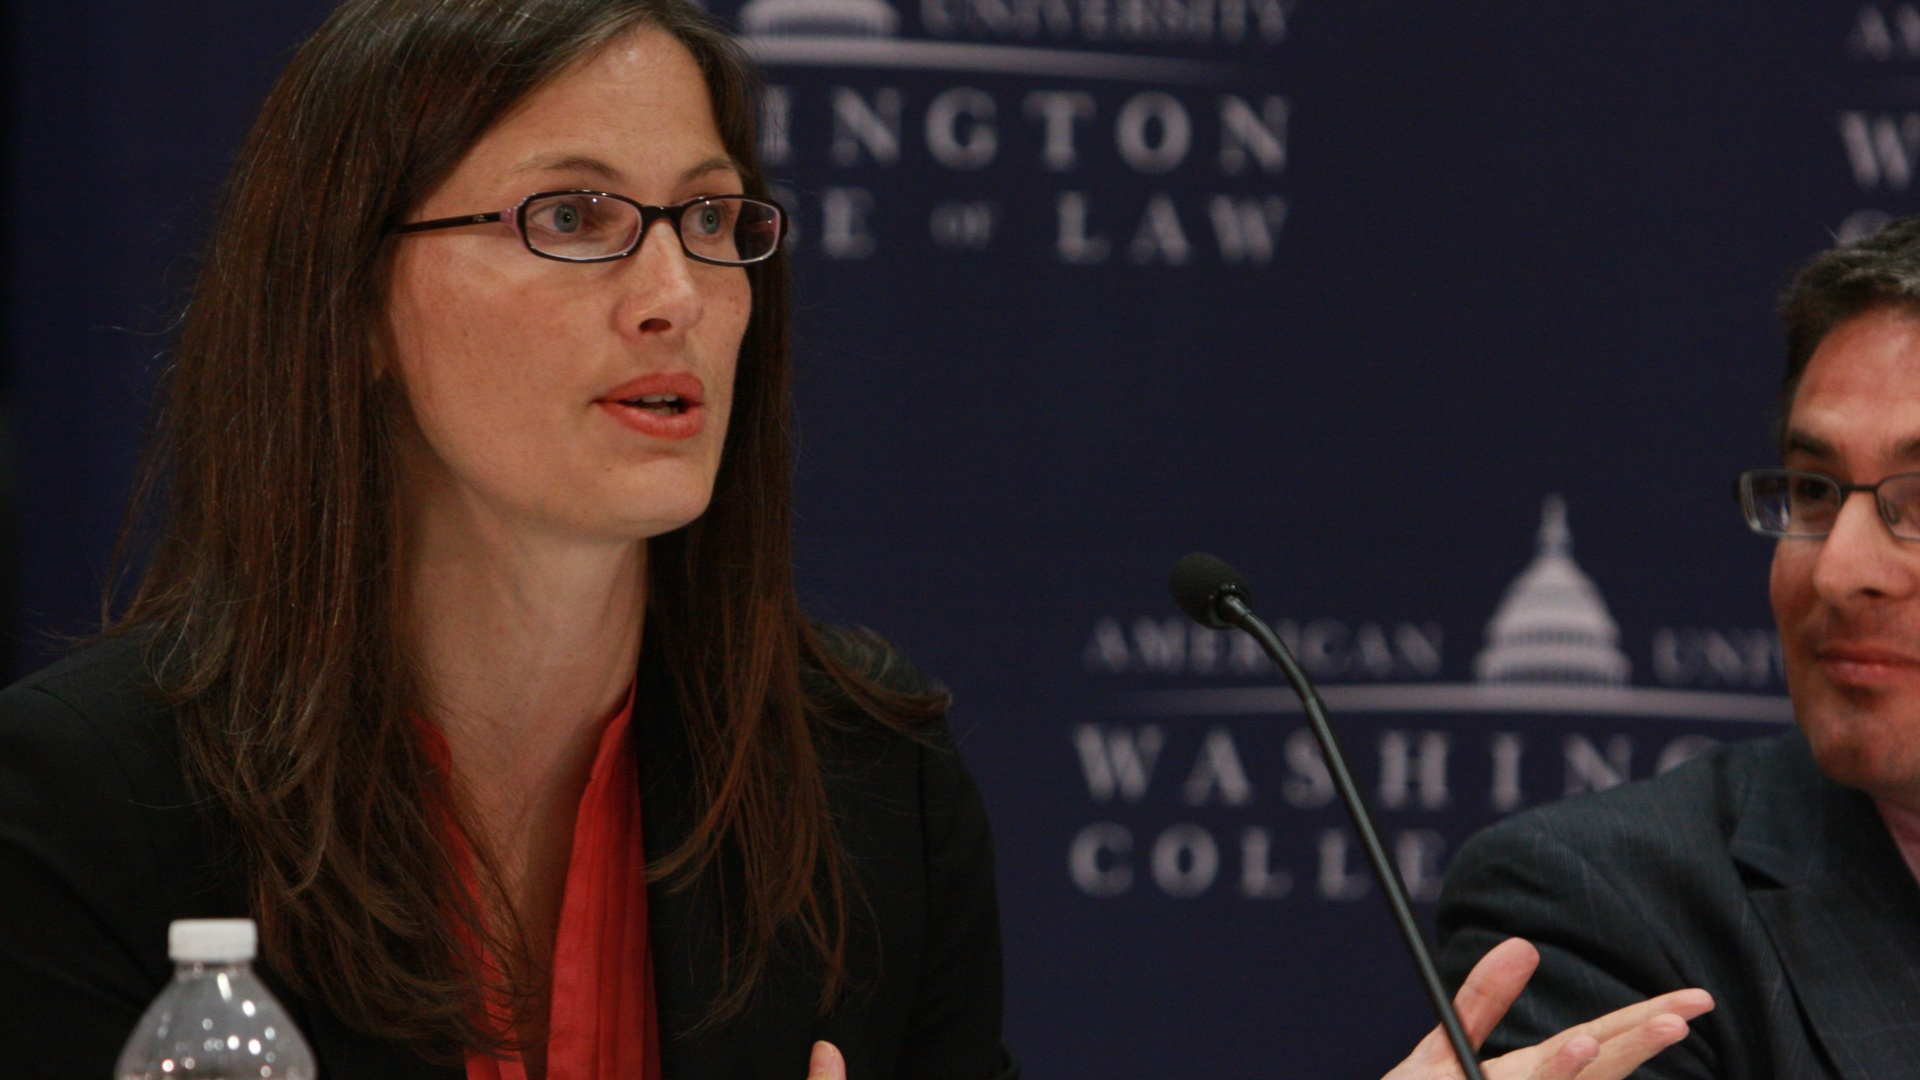 Professor Lindsay Wiley, director of AUWCL's Health Law and Policy Program